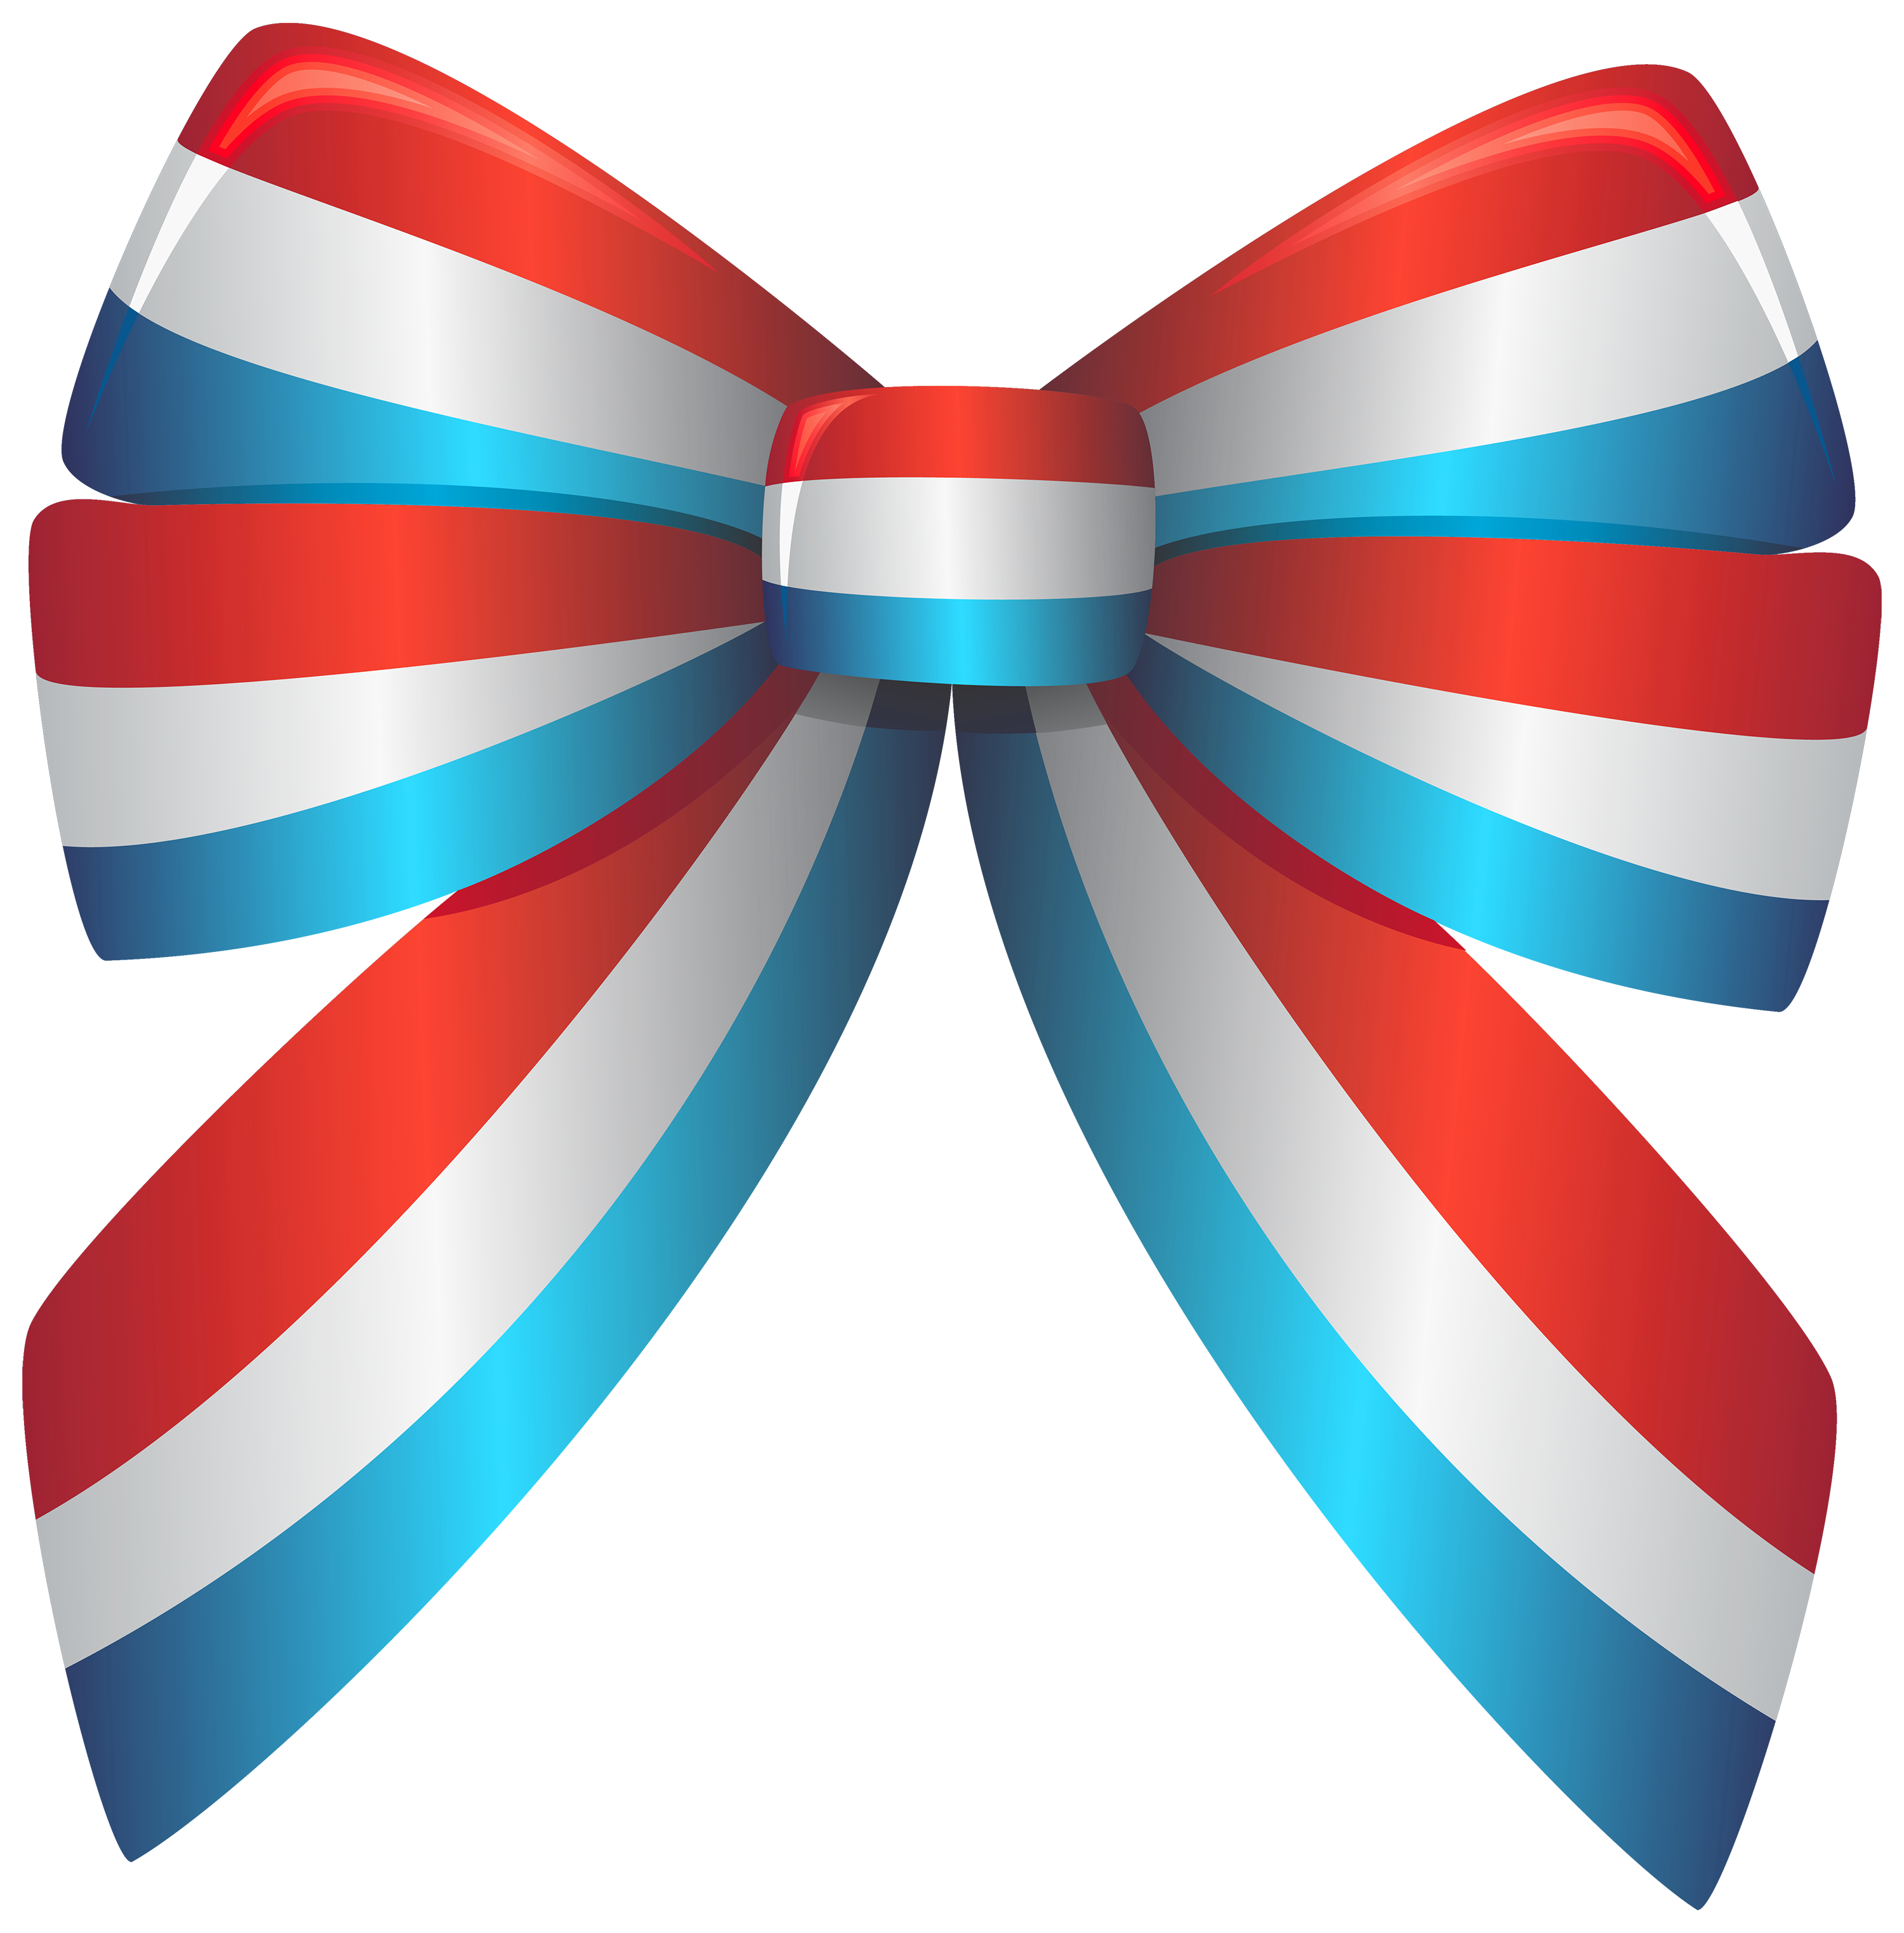 3000x3046 Red White And Blue Ribbon Clip Art